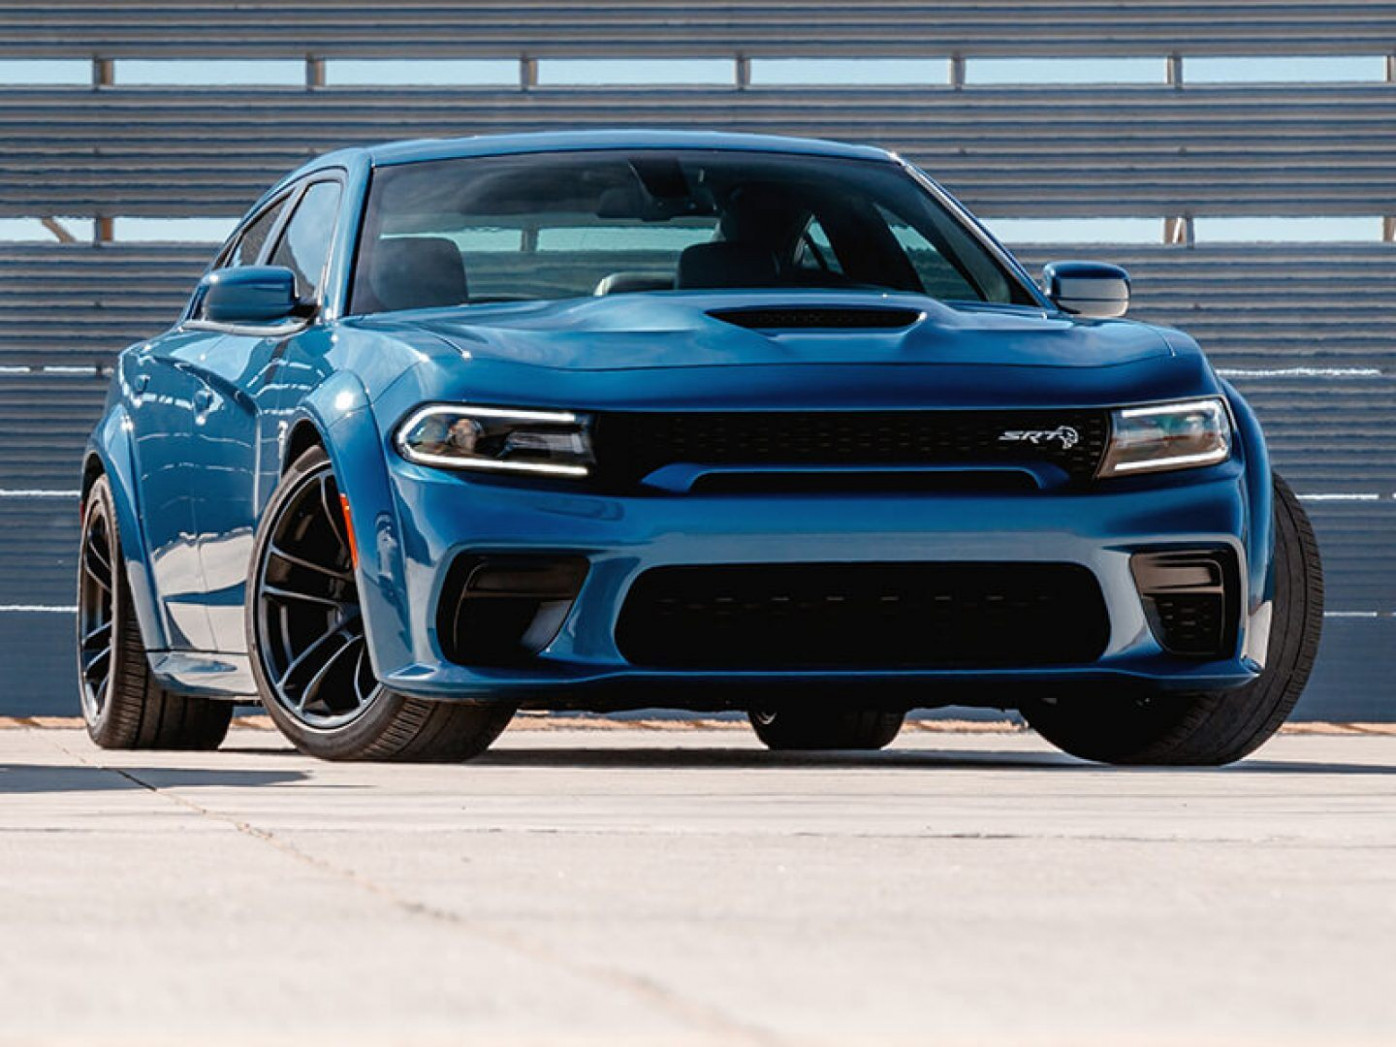 7 Dodge Charger Performance | SRT® Hellcat, Engine & More - 2020 dodge charger